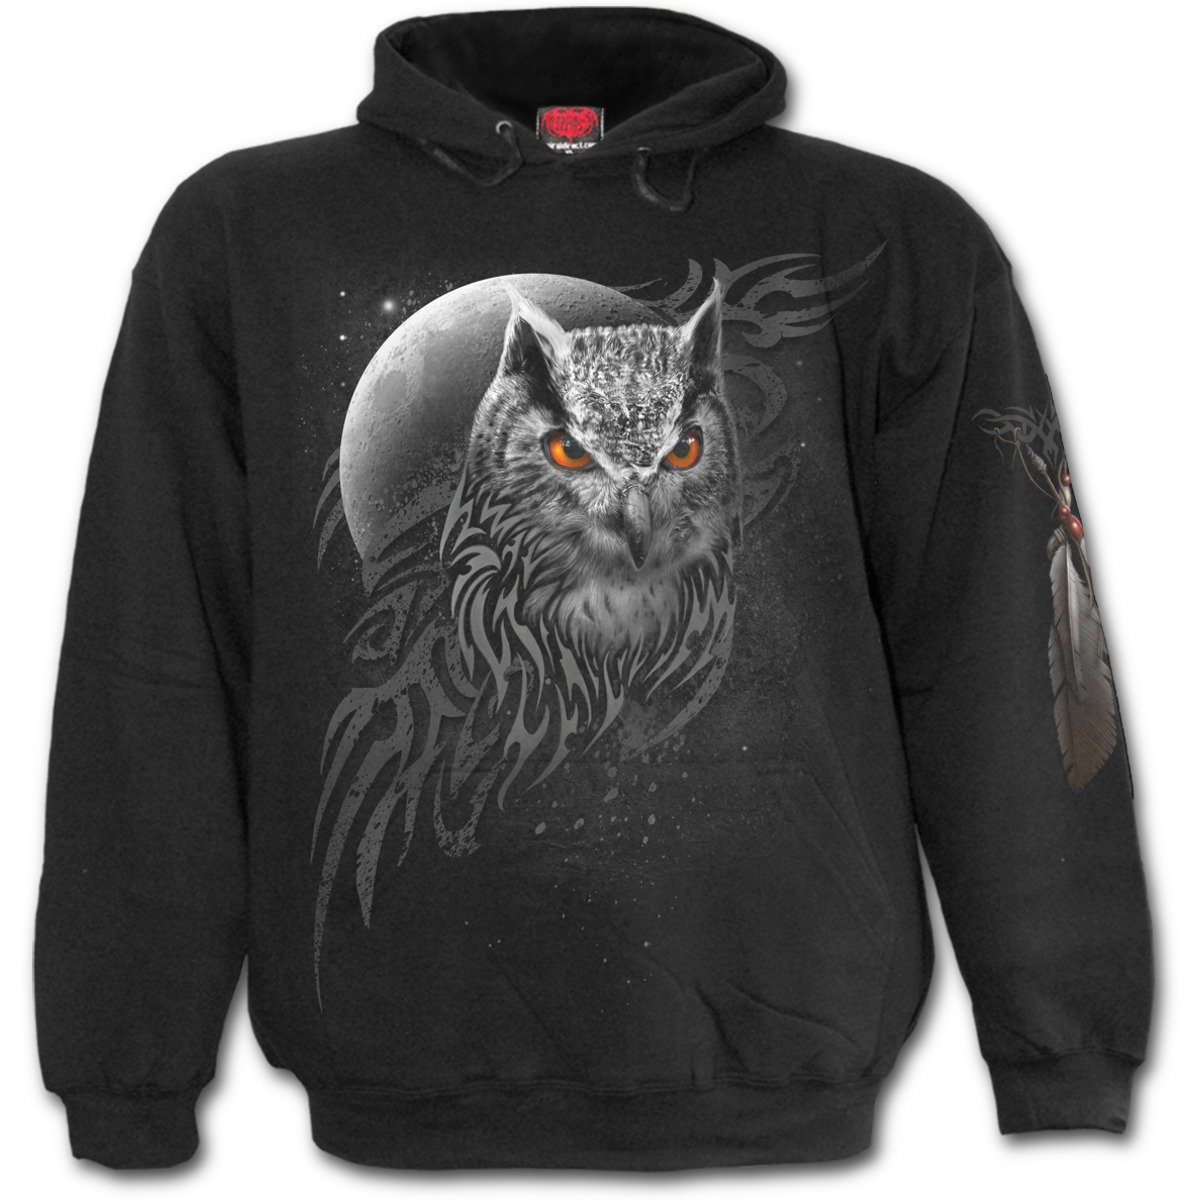 Spiral Wings of Wisdom - Hoody Black Spiral Direct Ltd E022M451